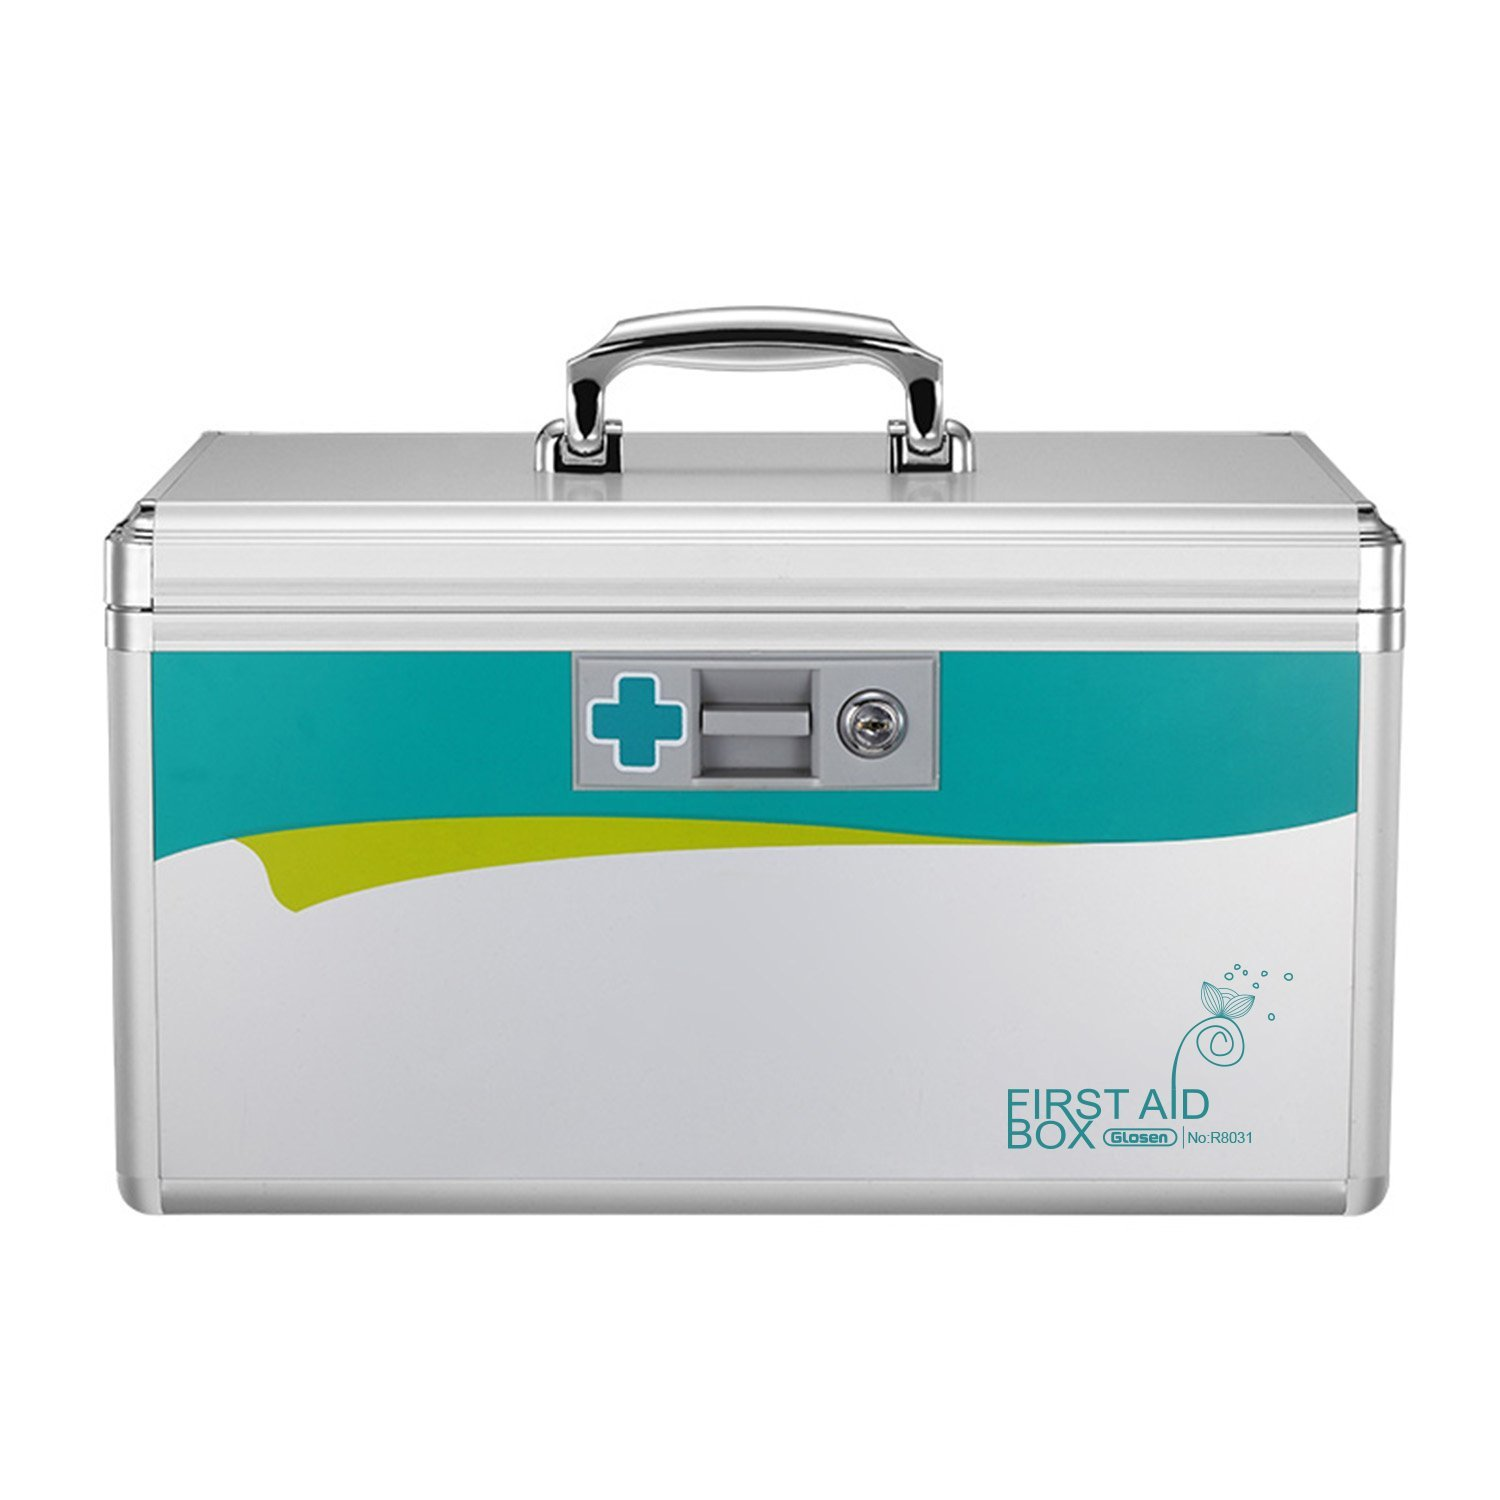 Glosen Lockable First Aid Box/Medicine Storage Box with Portable Handle Small Silver Image